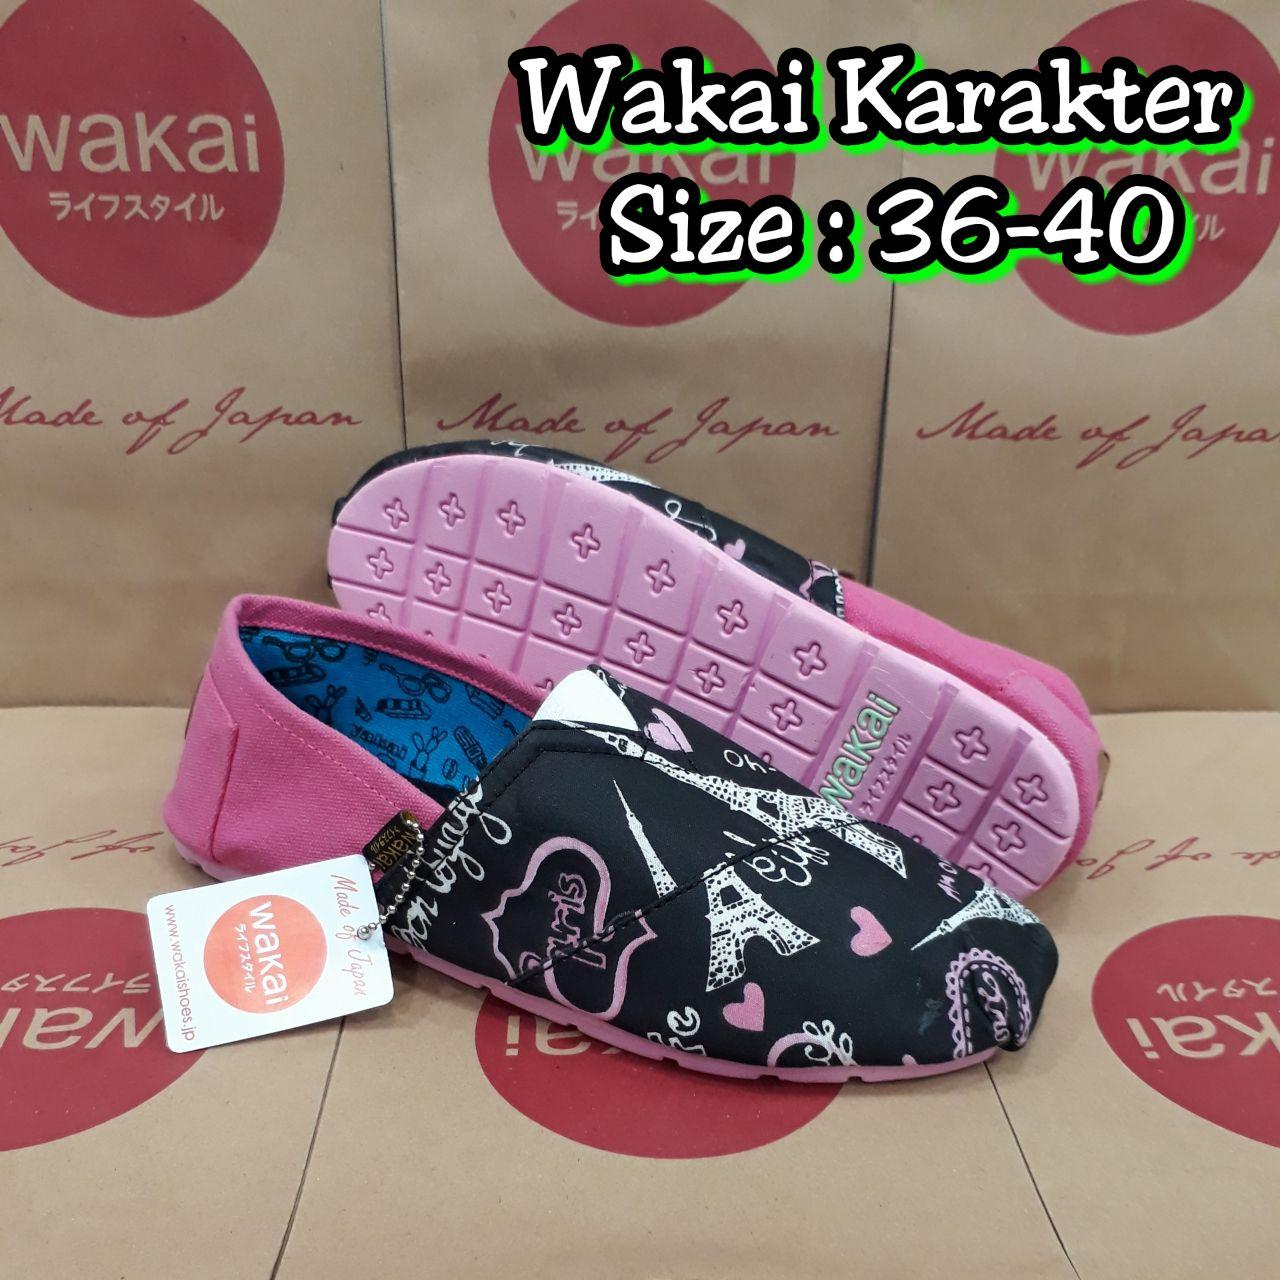 Wakai Slip on Hitam Pink PARIS uk36-40